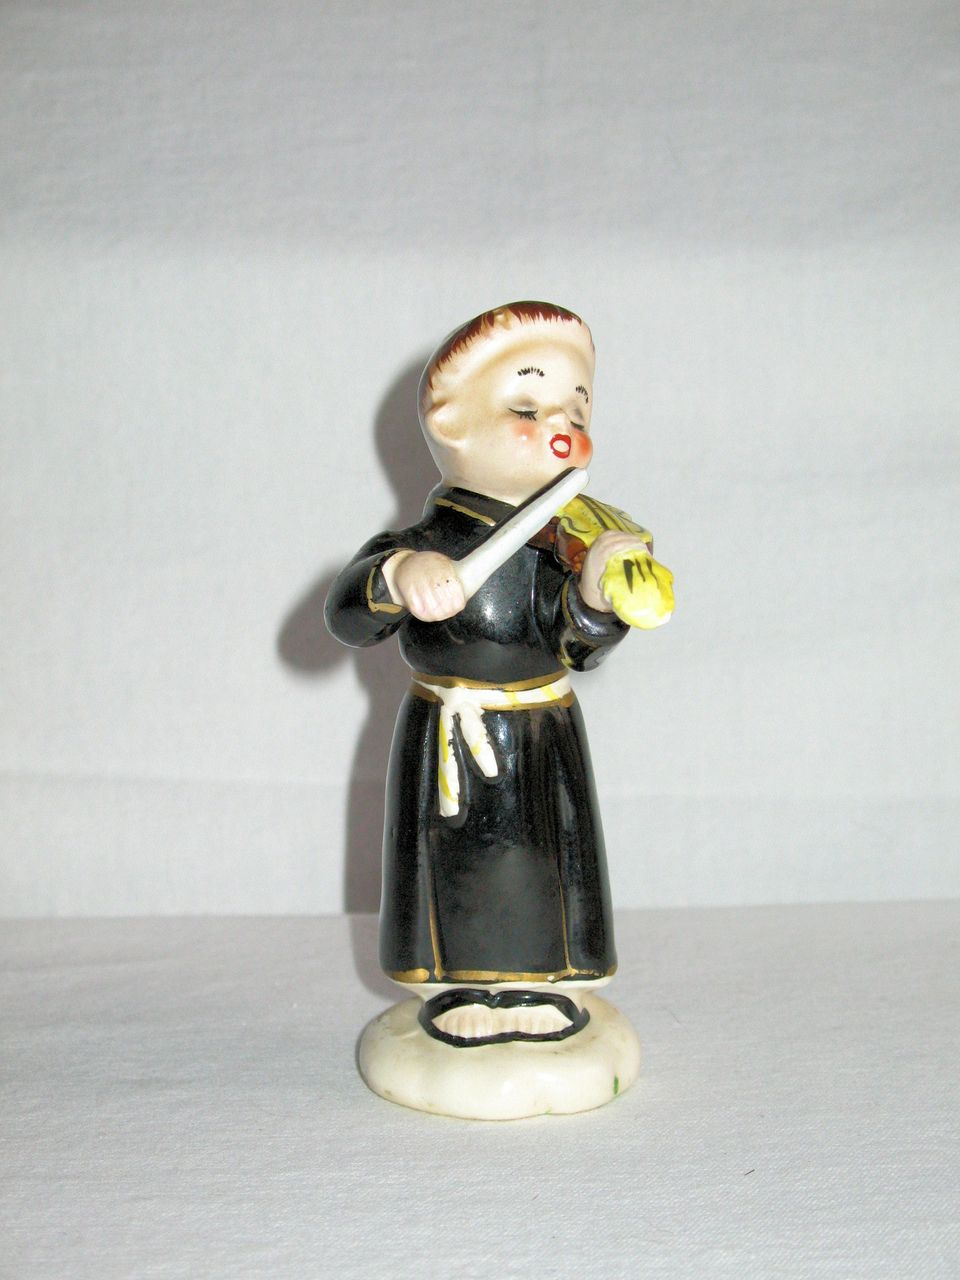 Porcelain Figurine Of A Young Monk Playing A Violin From